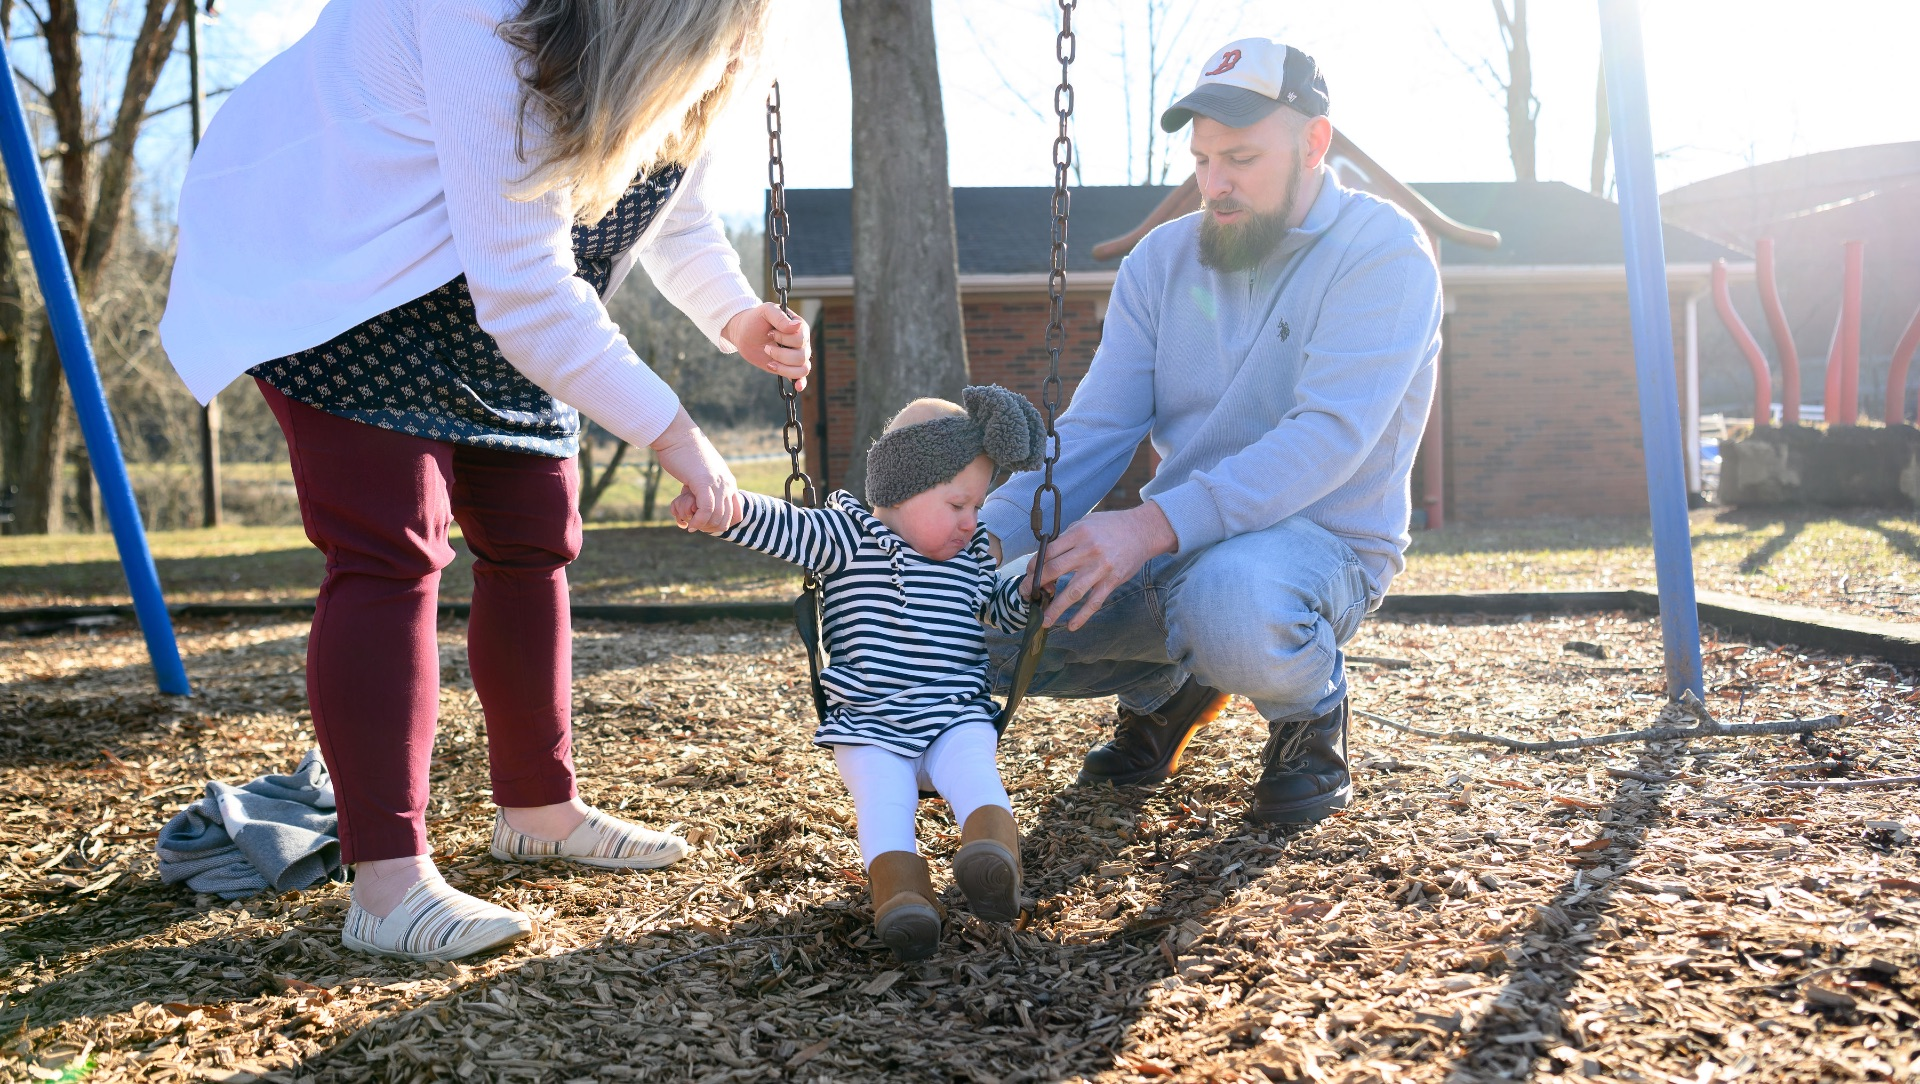 MaKenzie sits outside on a swing, flanked by her mother, Felicia, and her father, Timothy, a middle aged white man. He is wearing a light blue sweater, a grey and white baseball cap with blue jeans.